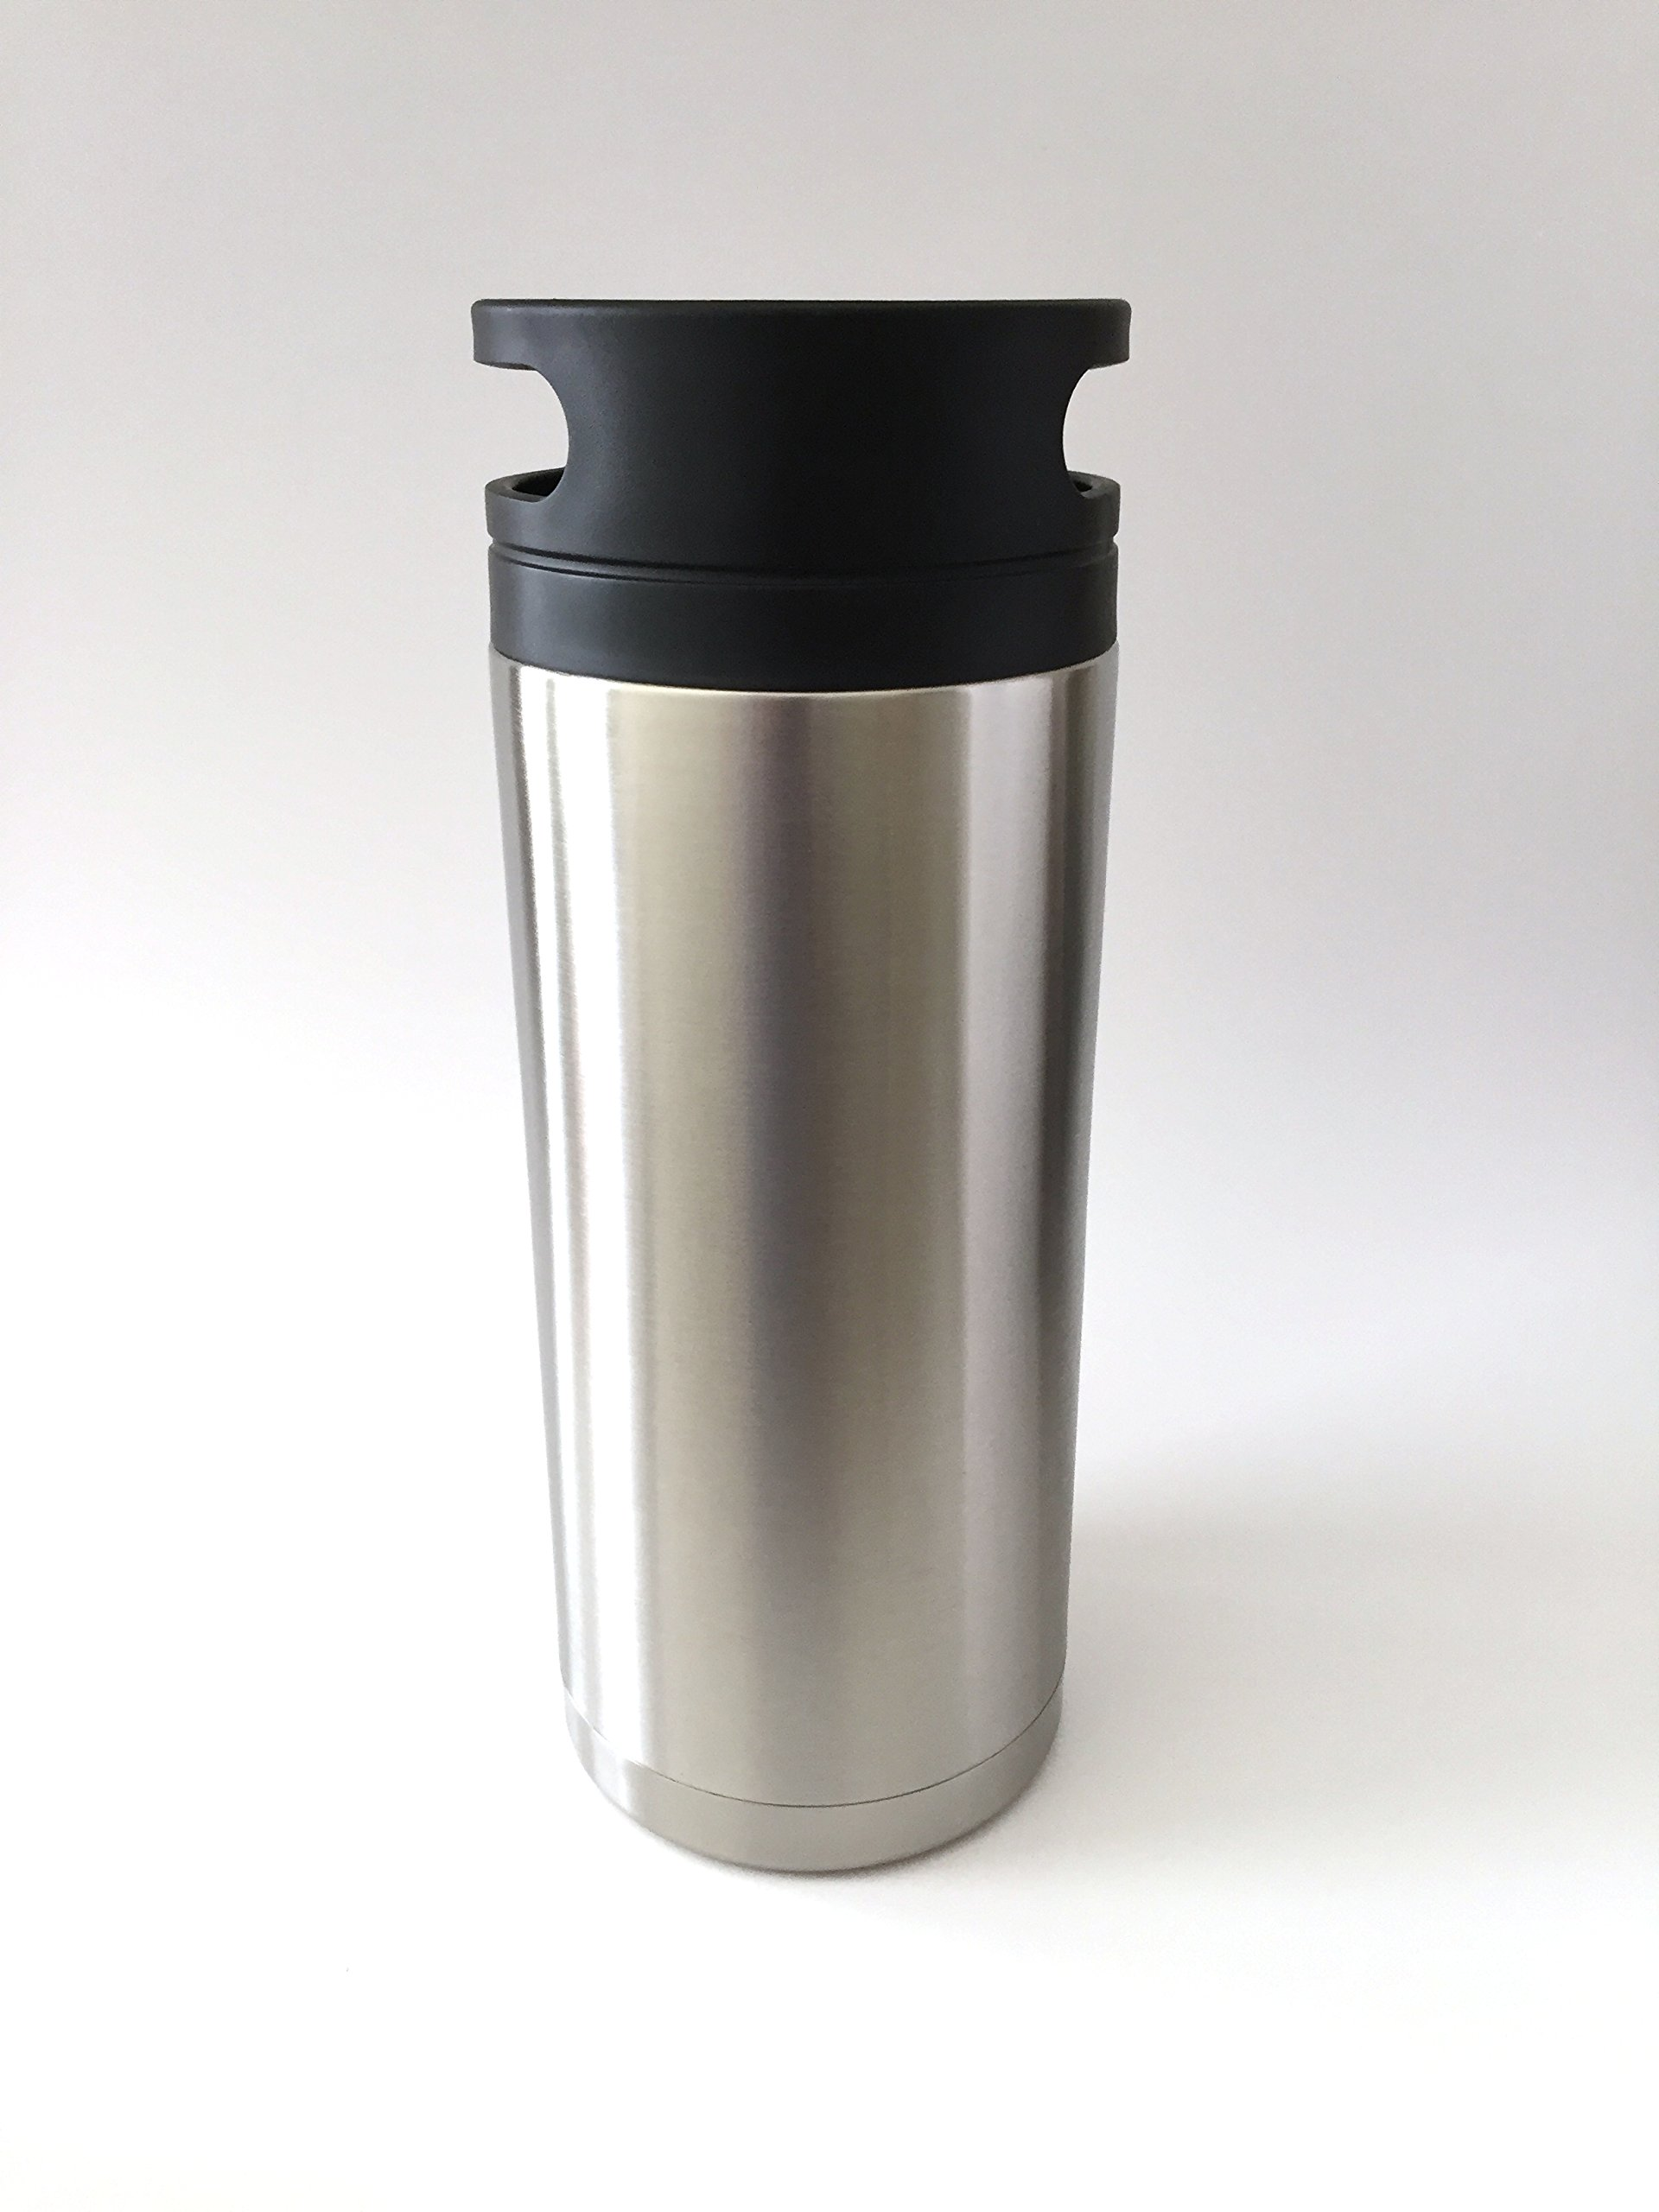 VIP Growler TM 60 oz Insulated Double Walled Stainless Steel Growler - Patent Pending-8 For the Price of 7